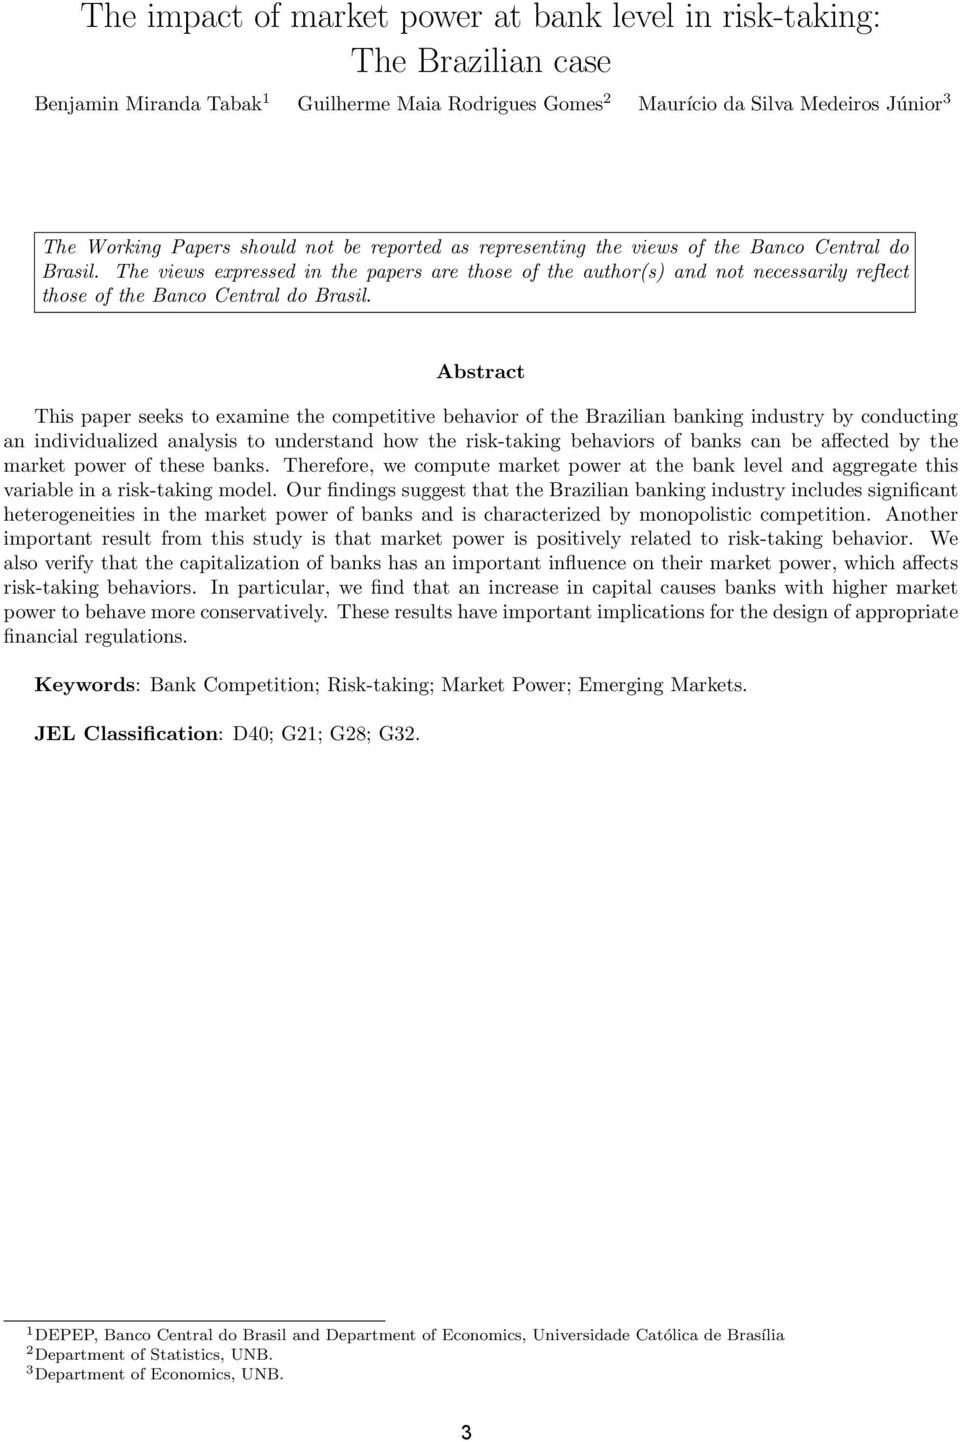 Abstract This paper seeks to examine the competitive behavior of the Brazilian banking industry by conducting an individualized analysis to understand how the risk-taking behaviors of banks can be